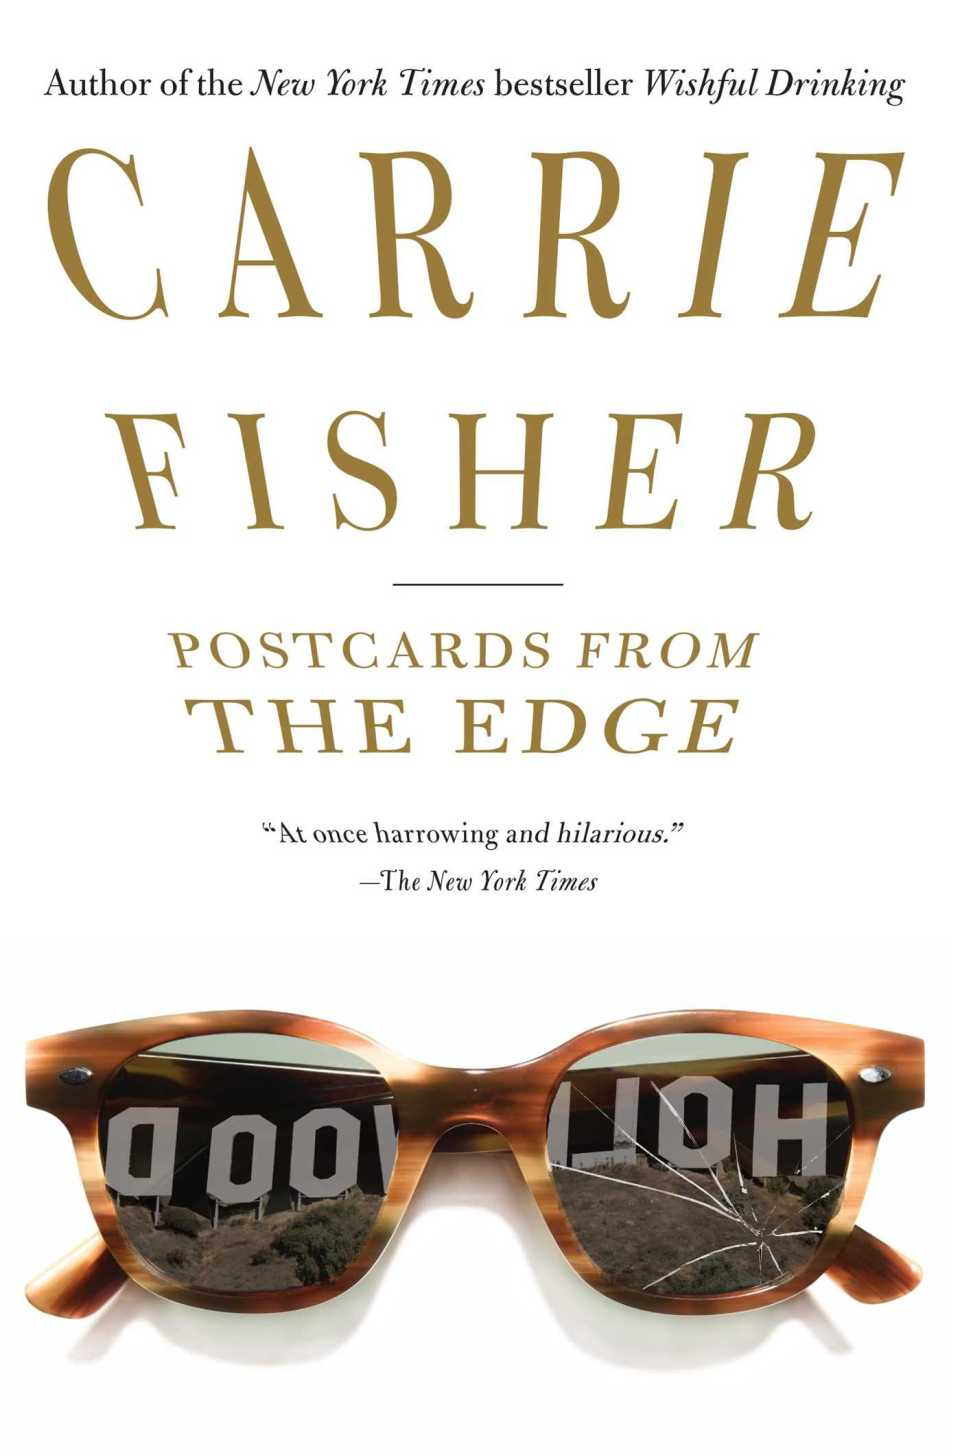 postcards-from-the-edge-9781439194003_hr